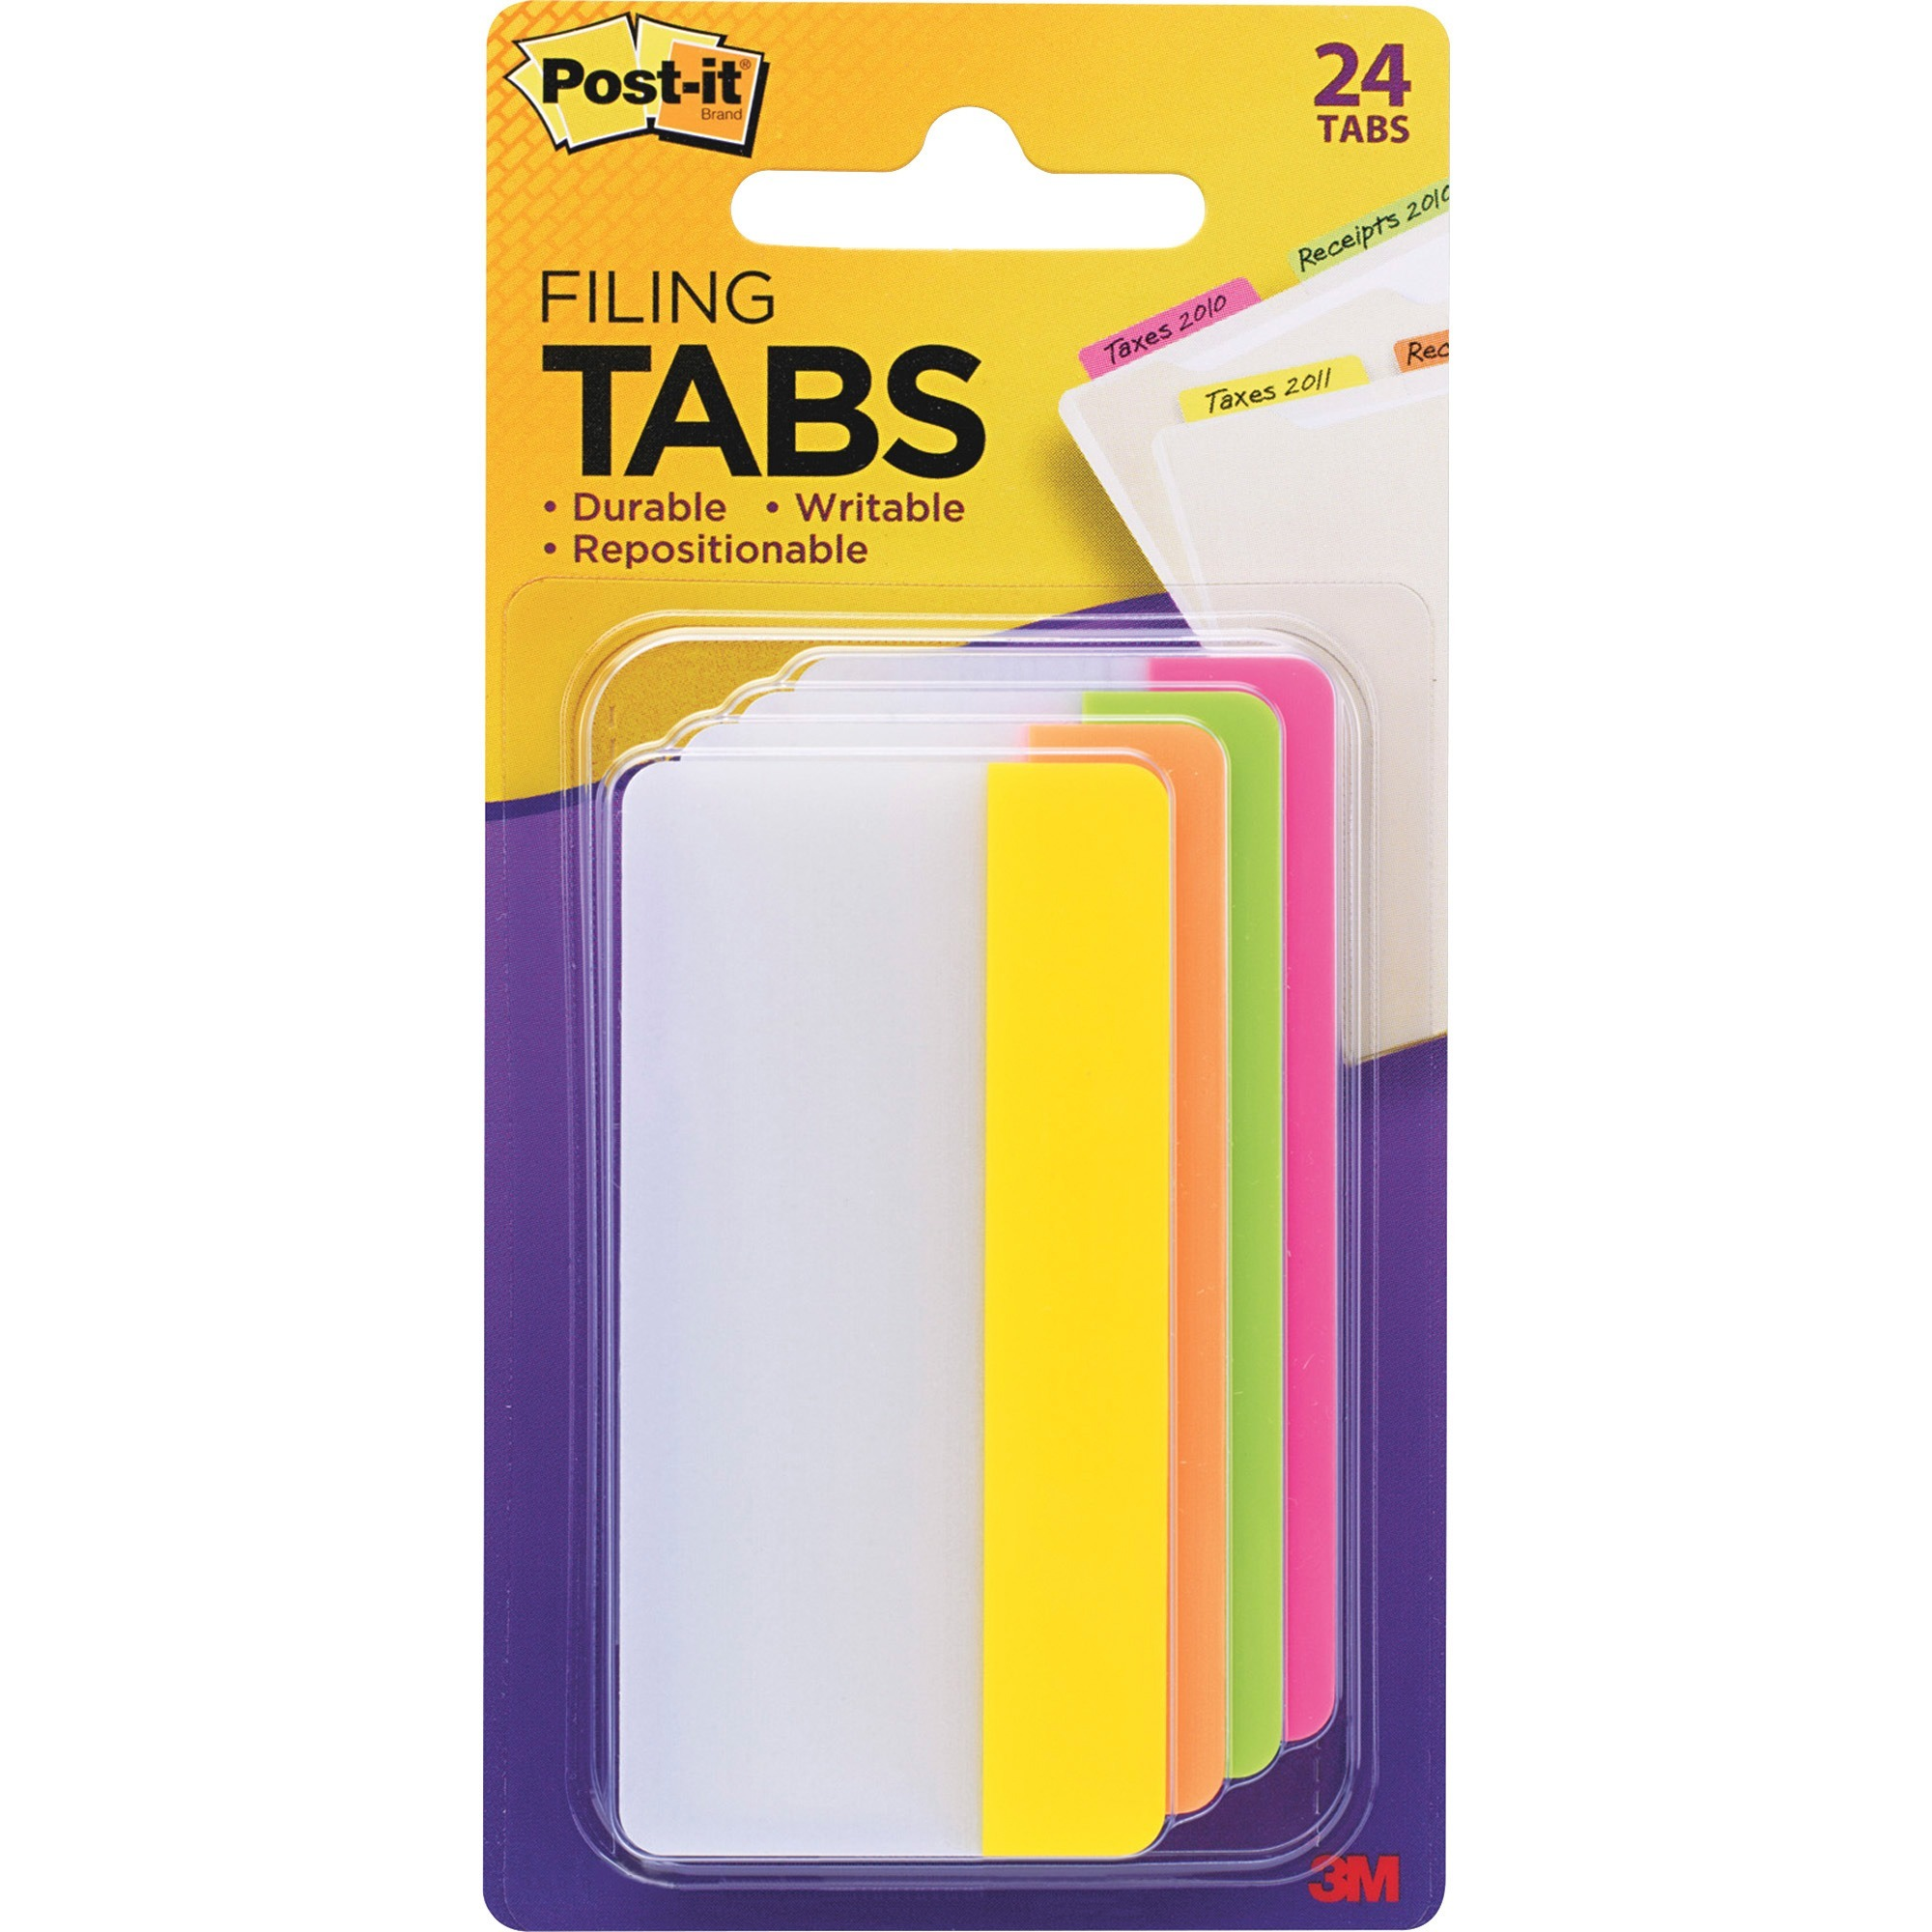 """Post-it Filing Tabs, 3"""" x 1.5"""", Assorted Bright Colors, 6 Tabs/Dispenser, 4 Dispensers/Pack"""